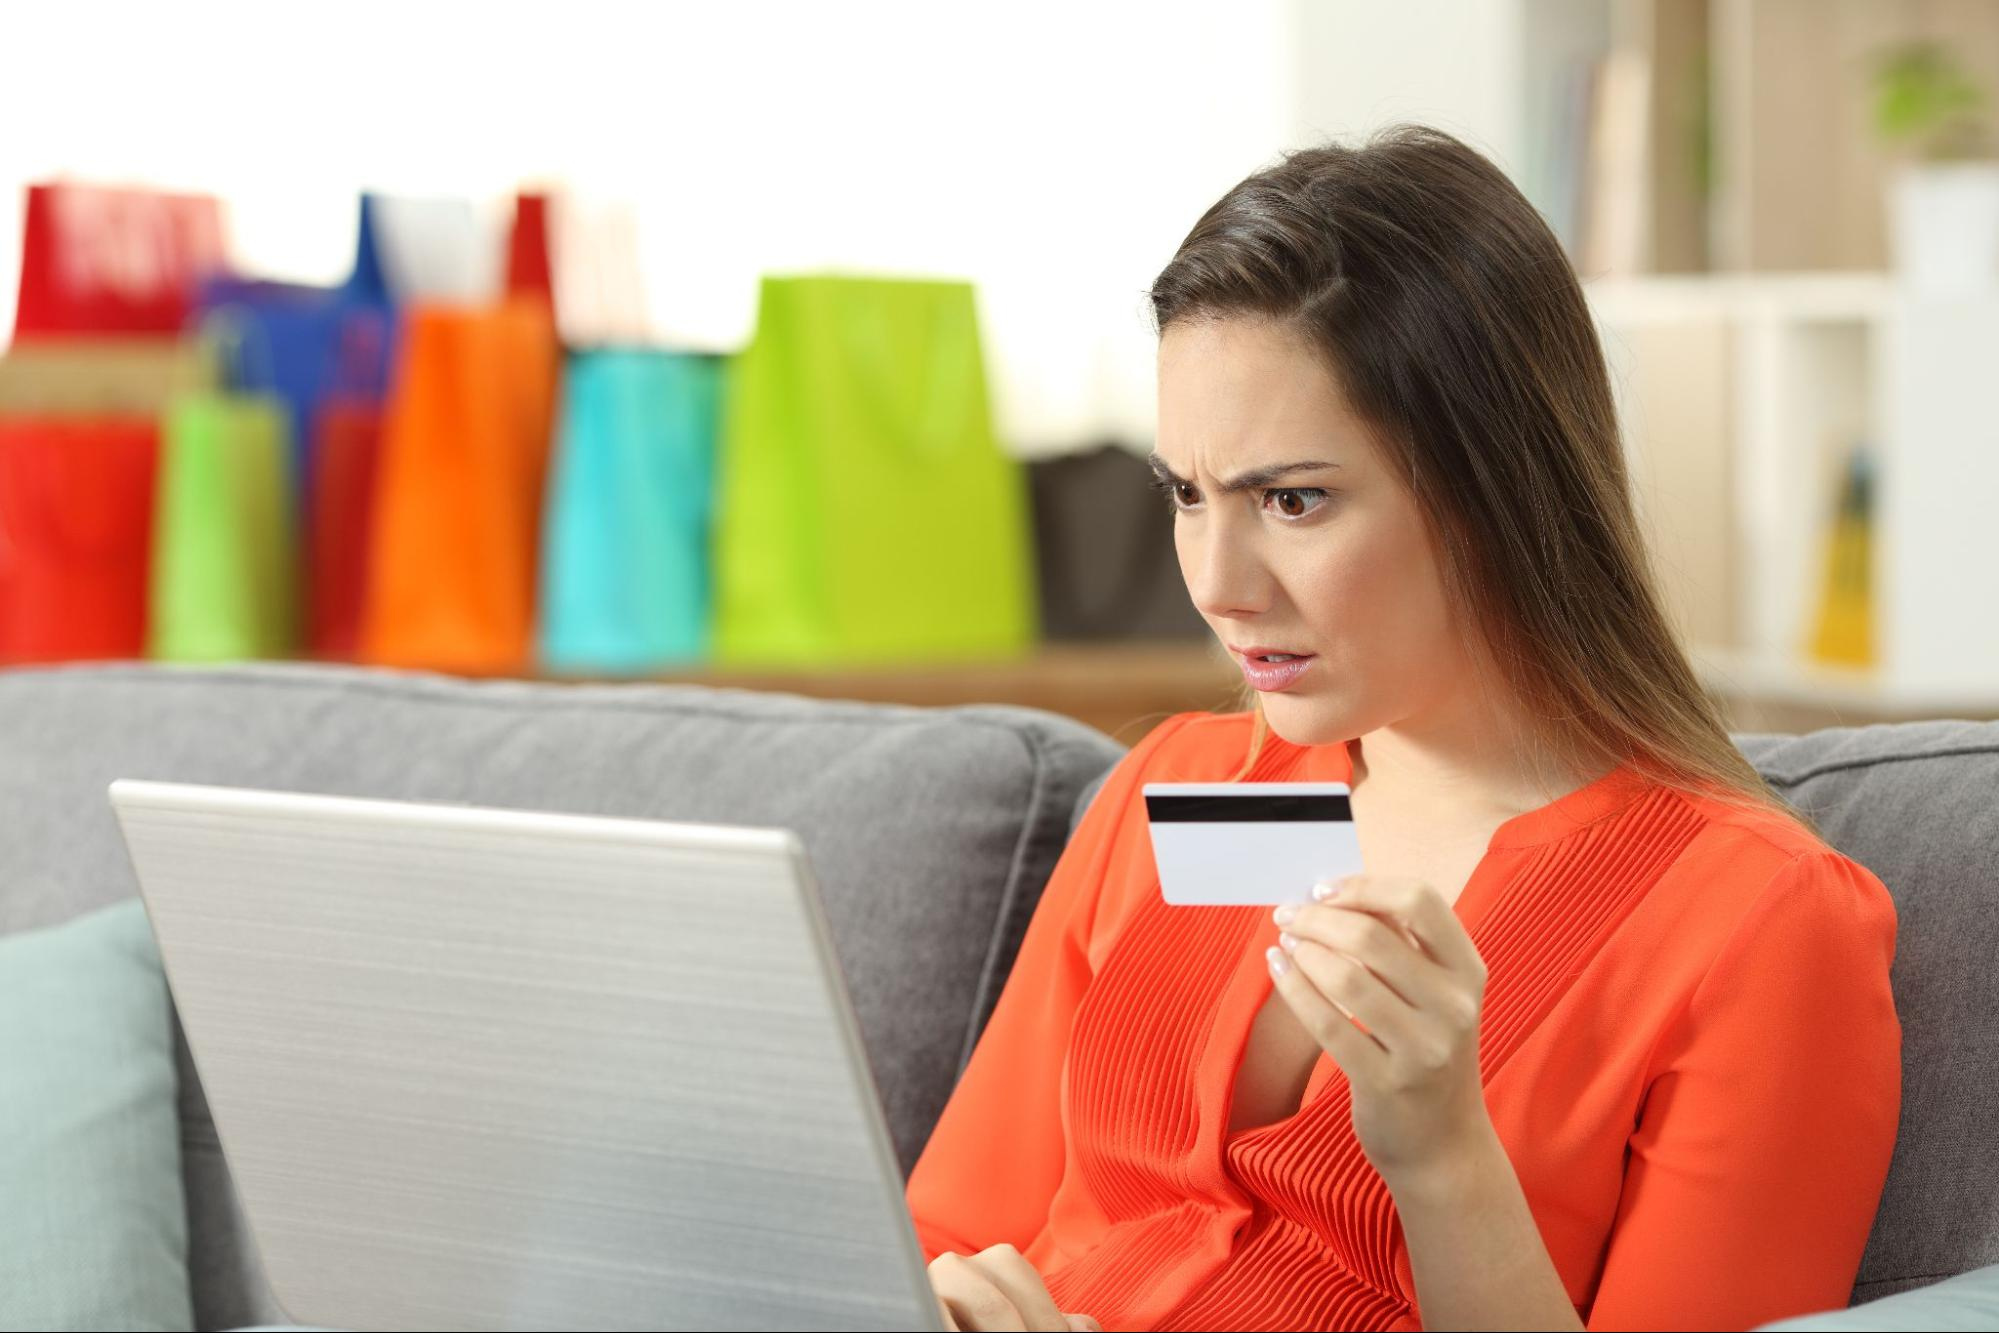 A shocked woman holds her credit card and looks at her laptop screen